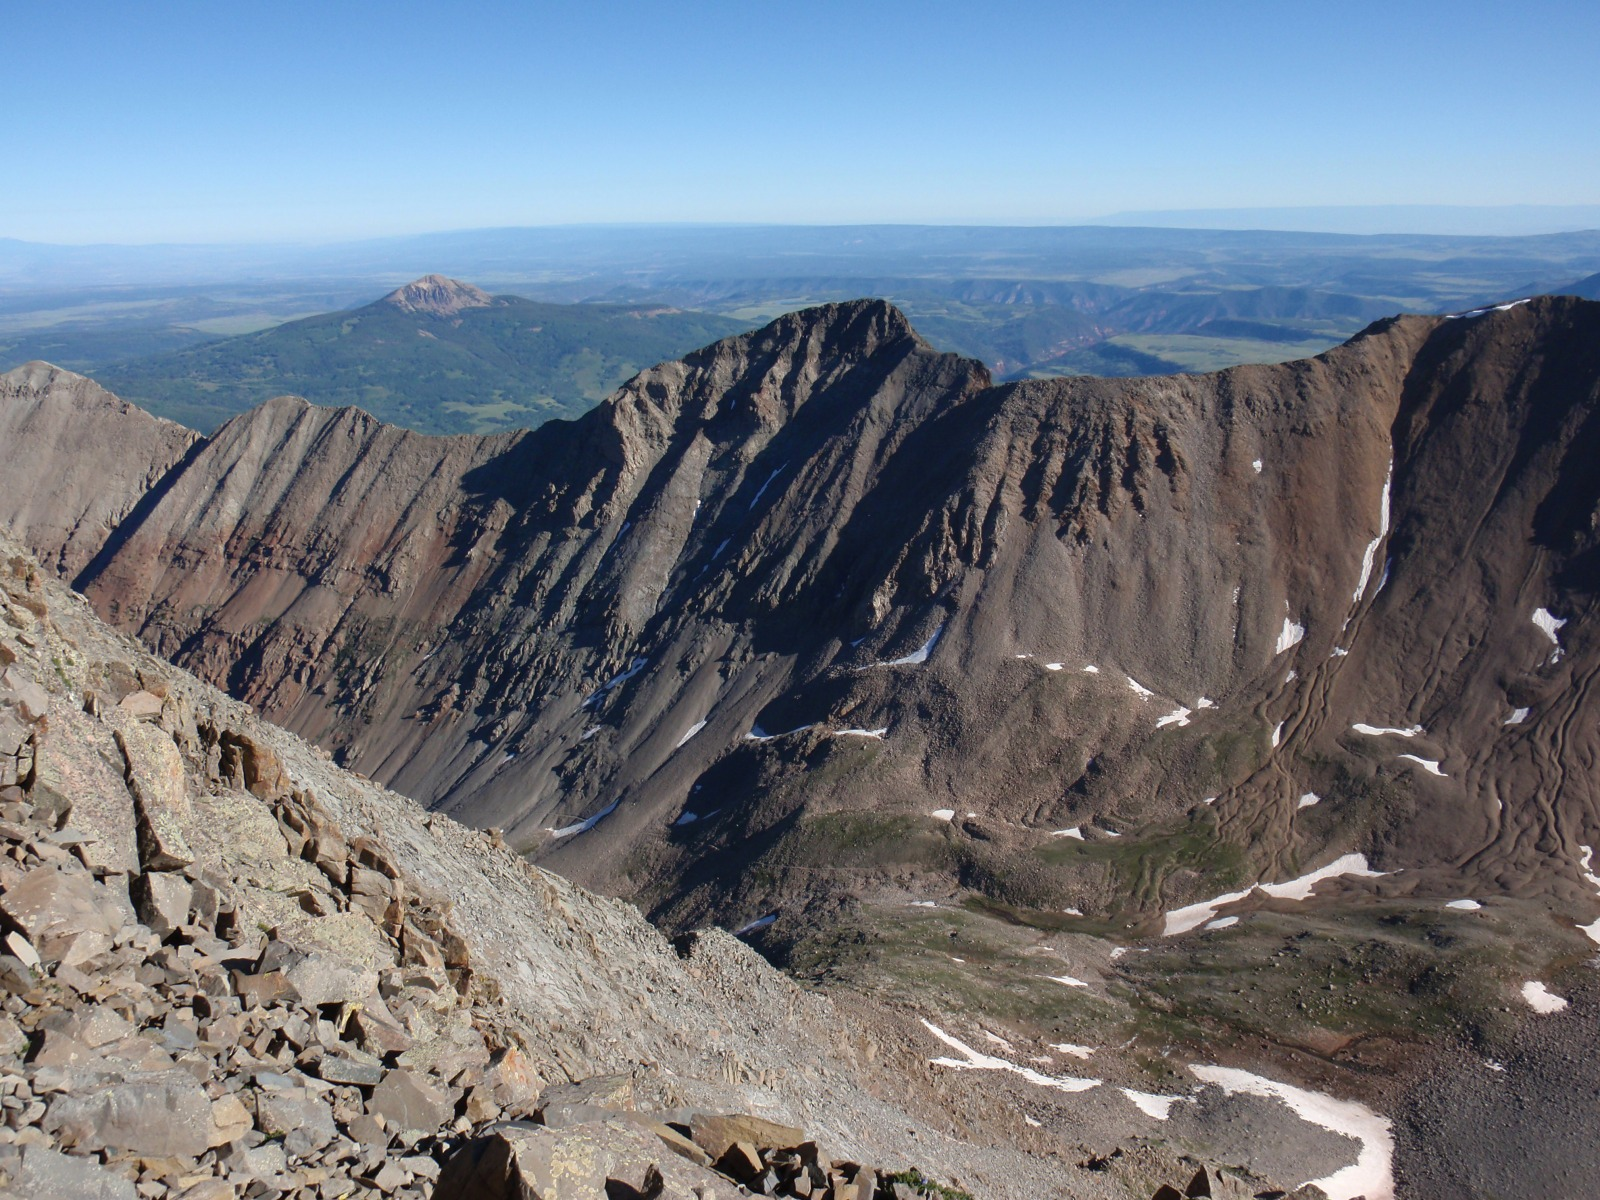 Fowler Peak from the summit of 14er El Diente Peak